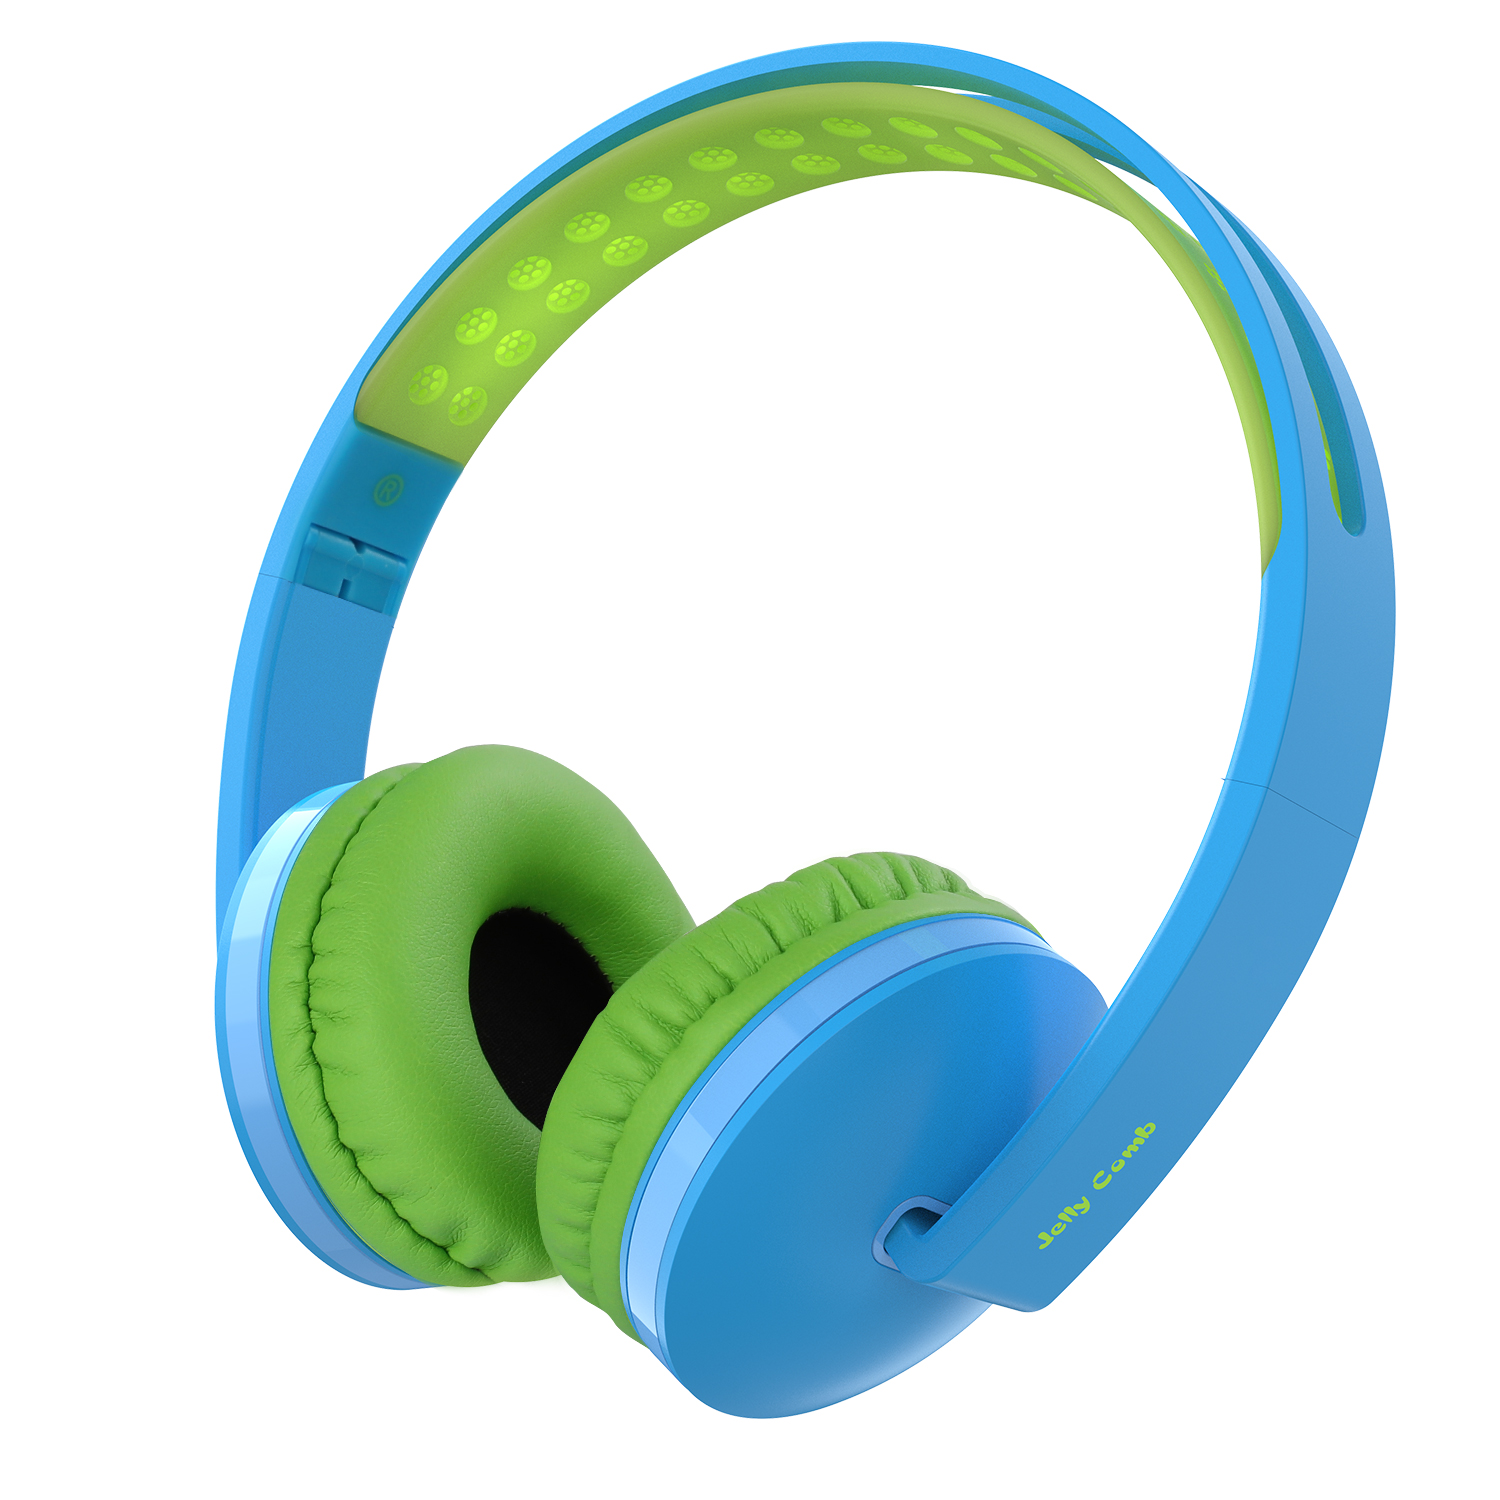 On Ear Headphones with Mic, Jelly Comb Foldable Corded Headphones Wired Headsets with Microphone, Volume Control for Cell Phone, Tablet, PC, Laptop, MP3/4, Video Game (Blue &Green)